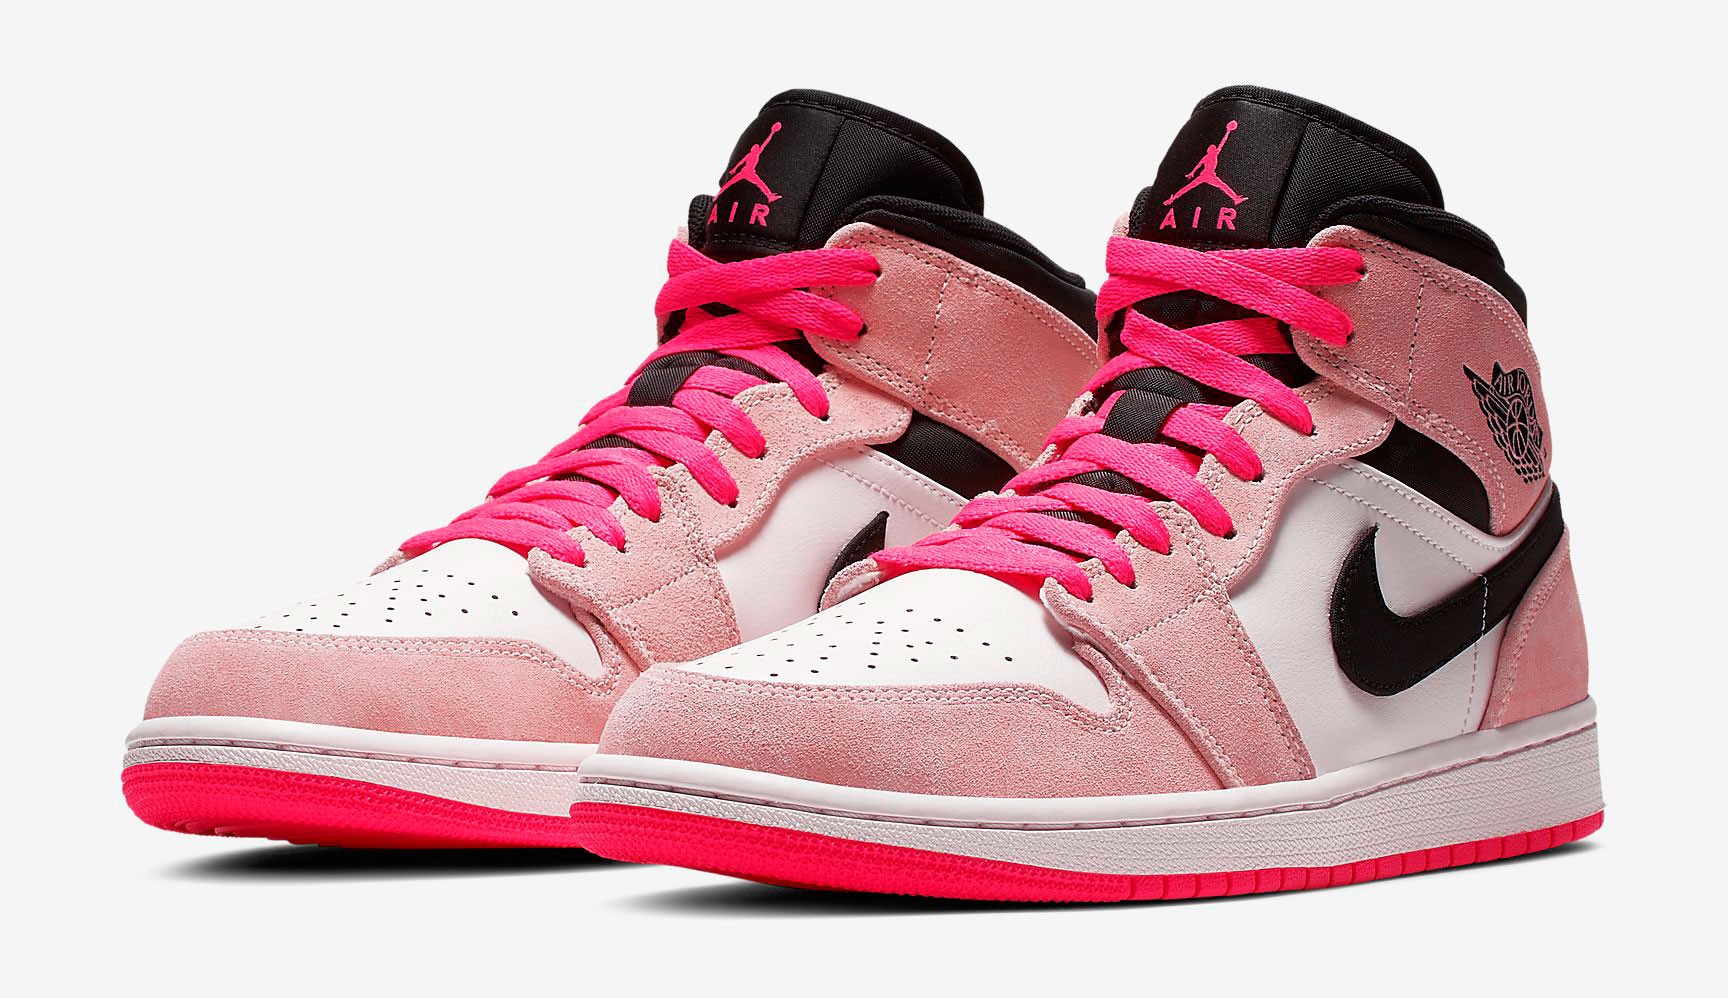 air-jordan-1-mid-crimson-tint-hyper-pink-where-to-buy